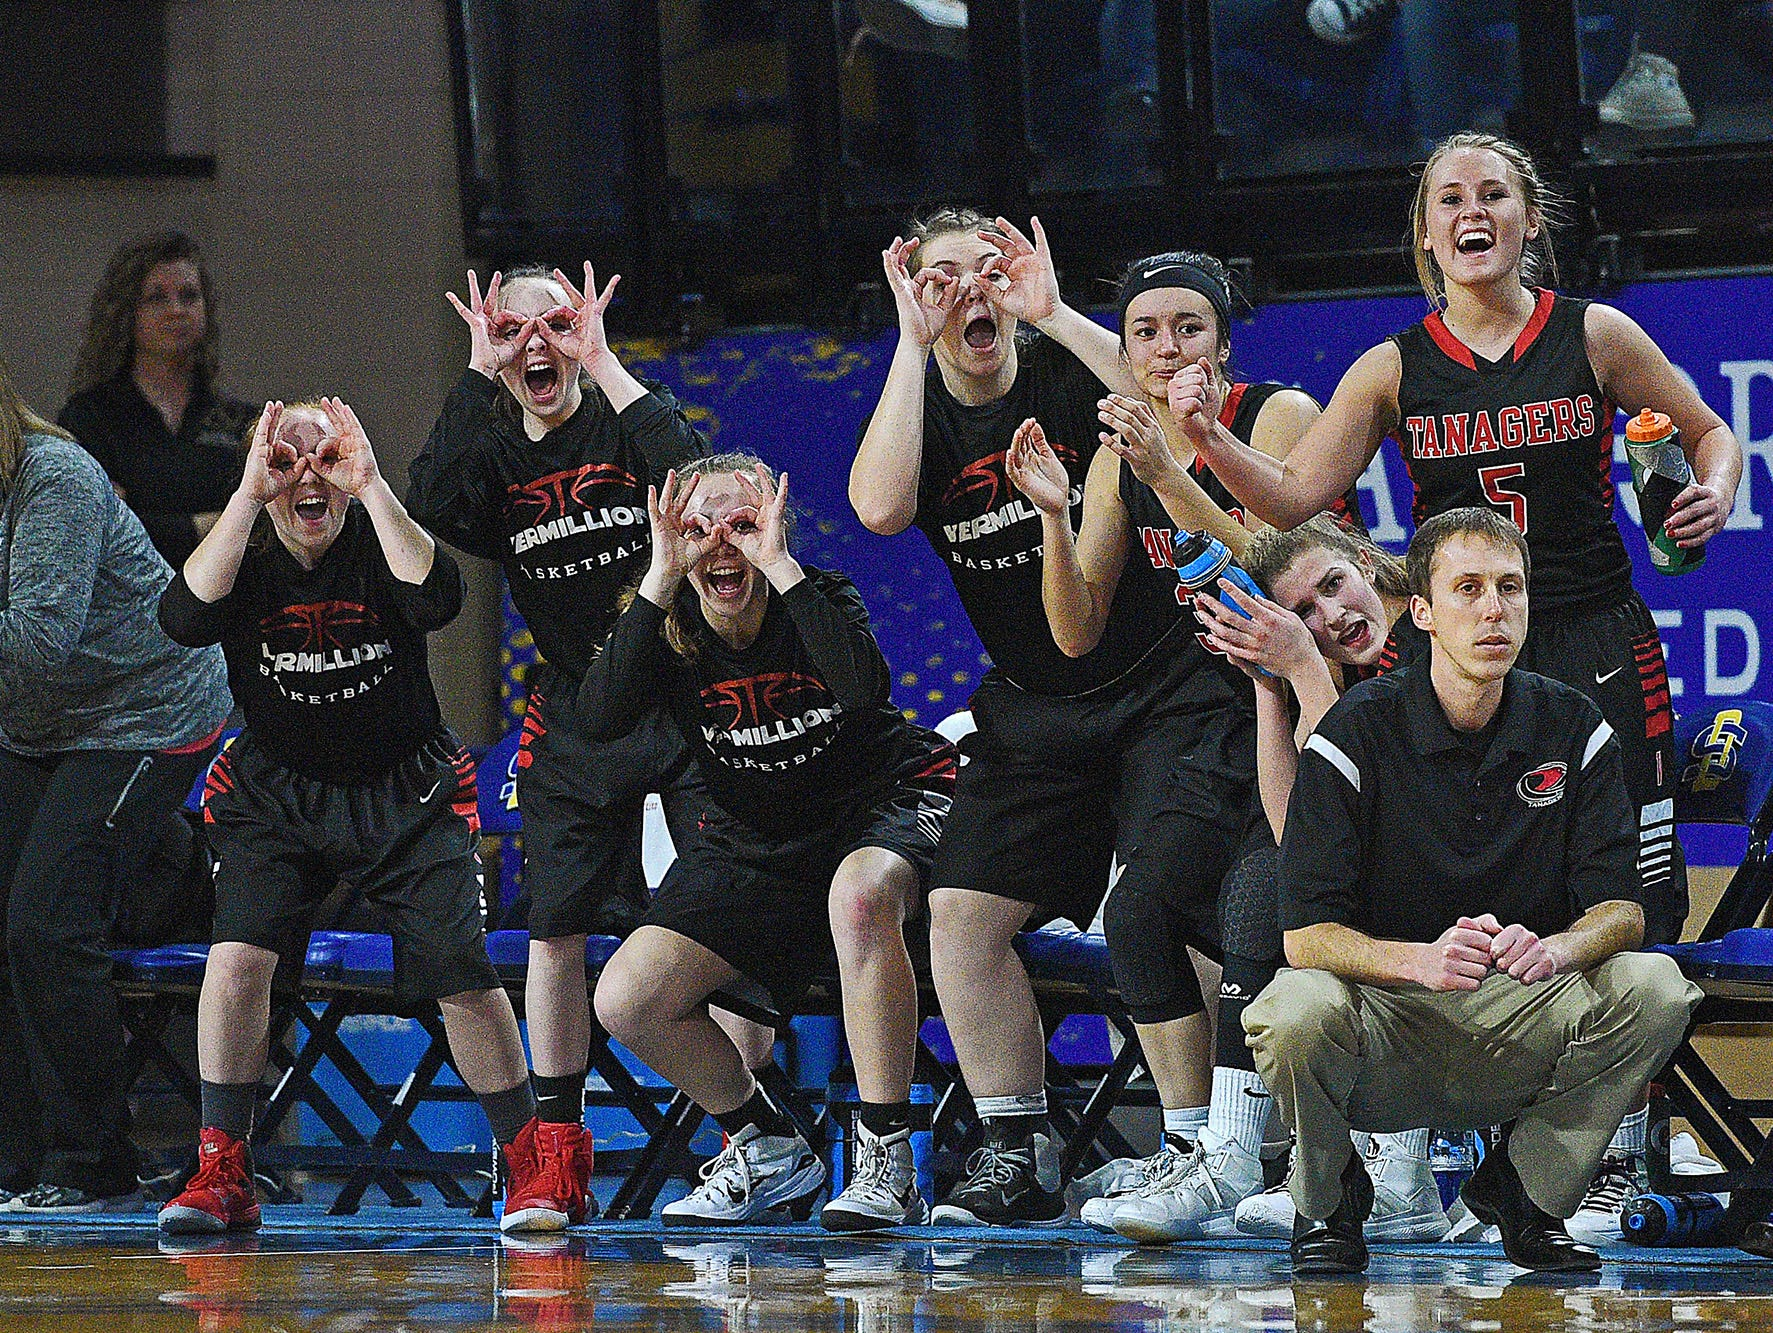 Vermillion players react from the bench after a teammate scored during a 2017 SDHSAA Class A State Girls Basketball Tournament quarterfinal game against Hamlin Thursday, March 9, 2017, at Frost Arena on the South Dakota State University campus in Brookings, S.D. Vermillion beat Hamlin 49-43.